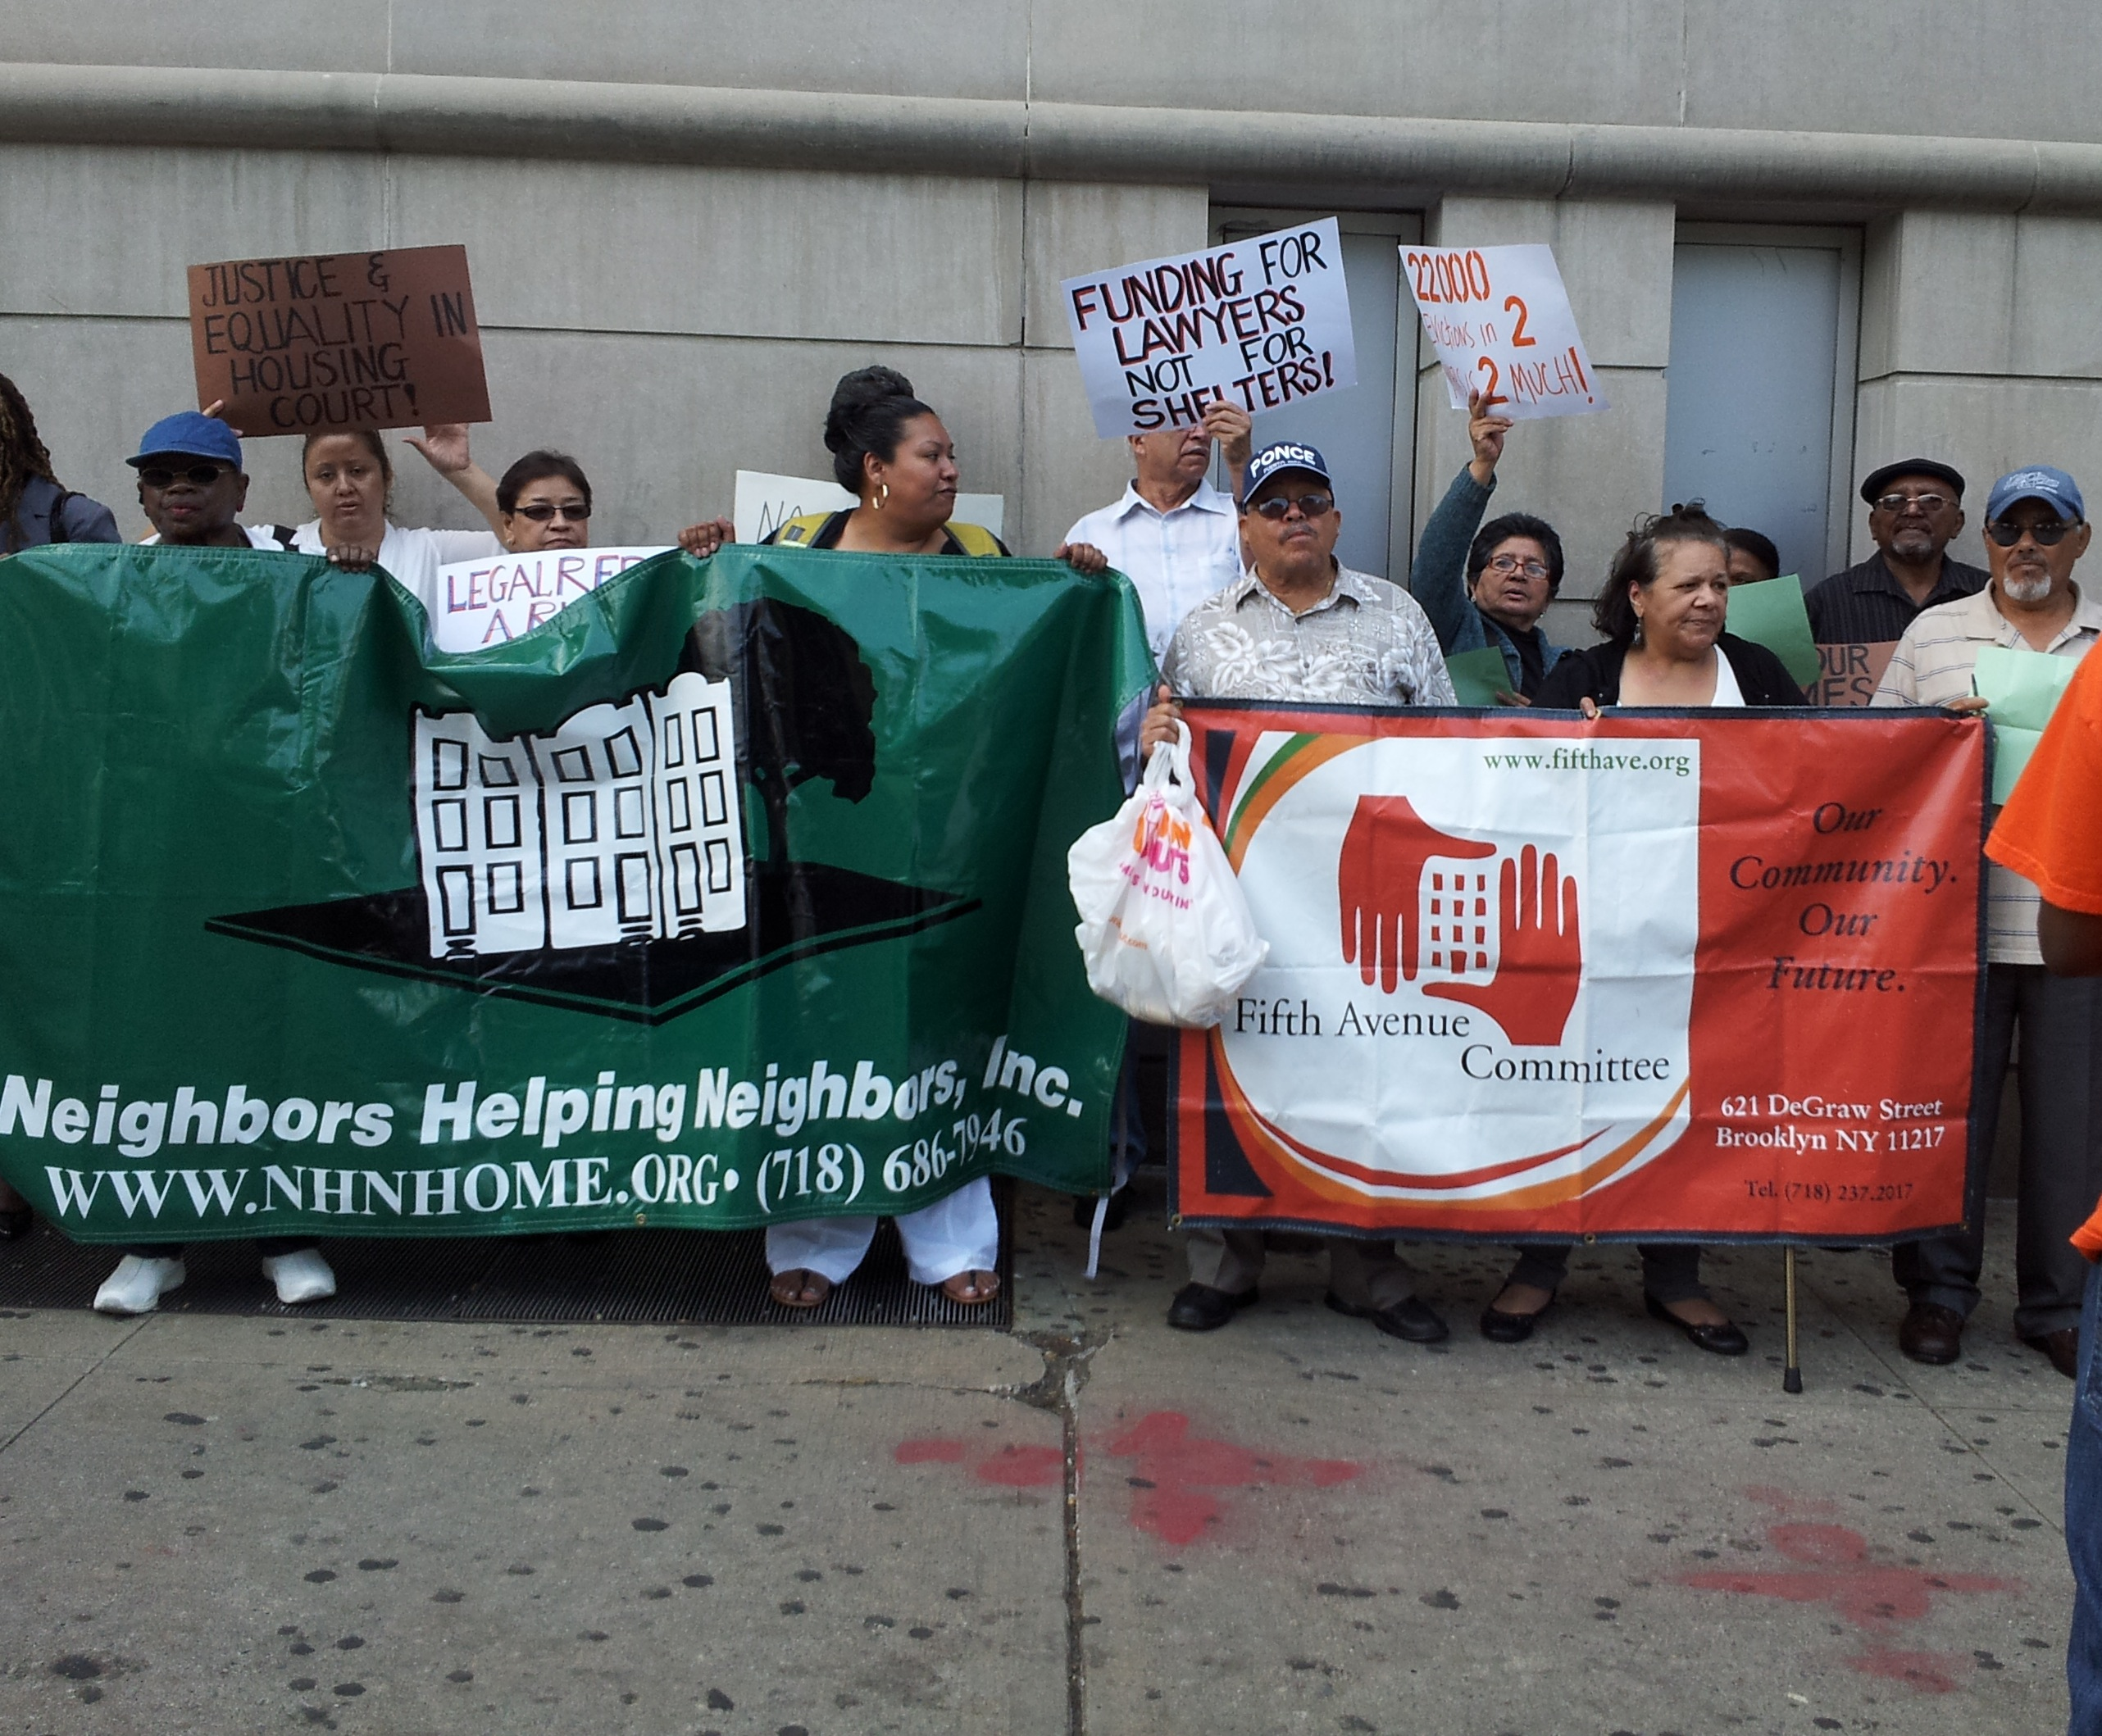 Tenants rally for legal reform